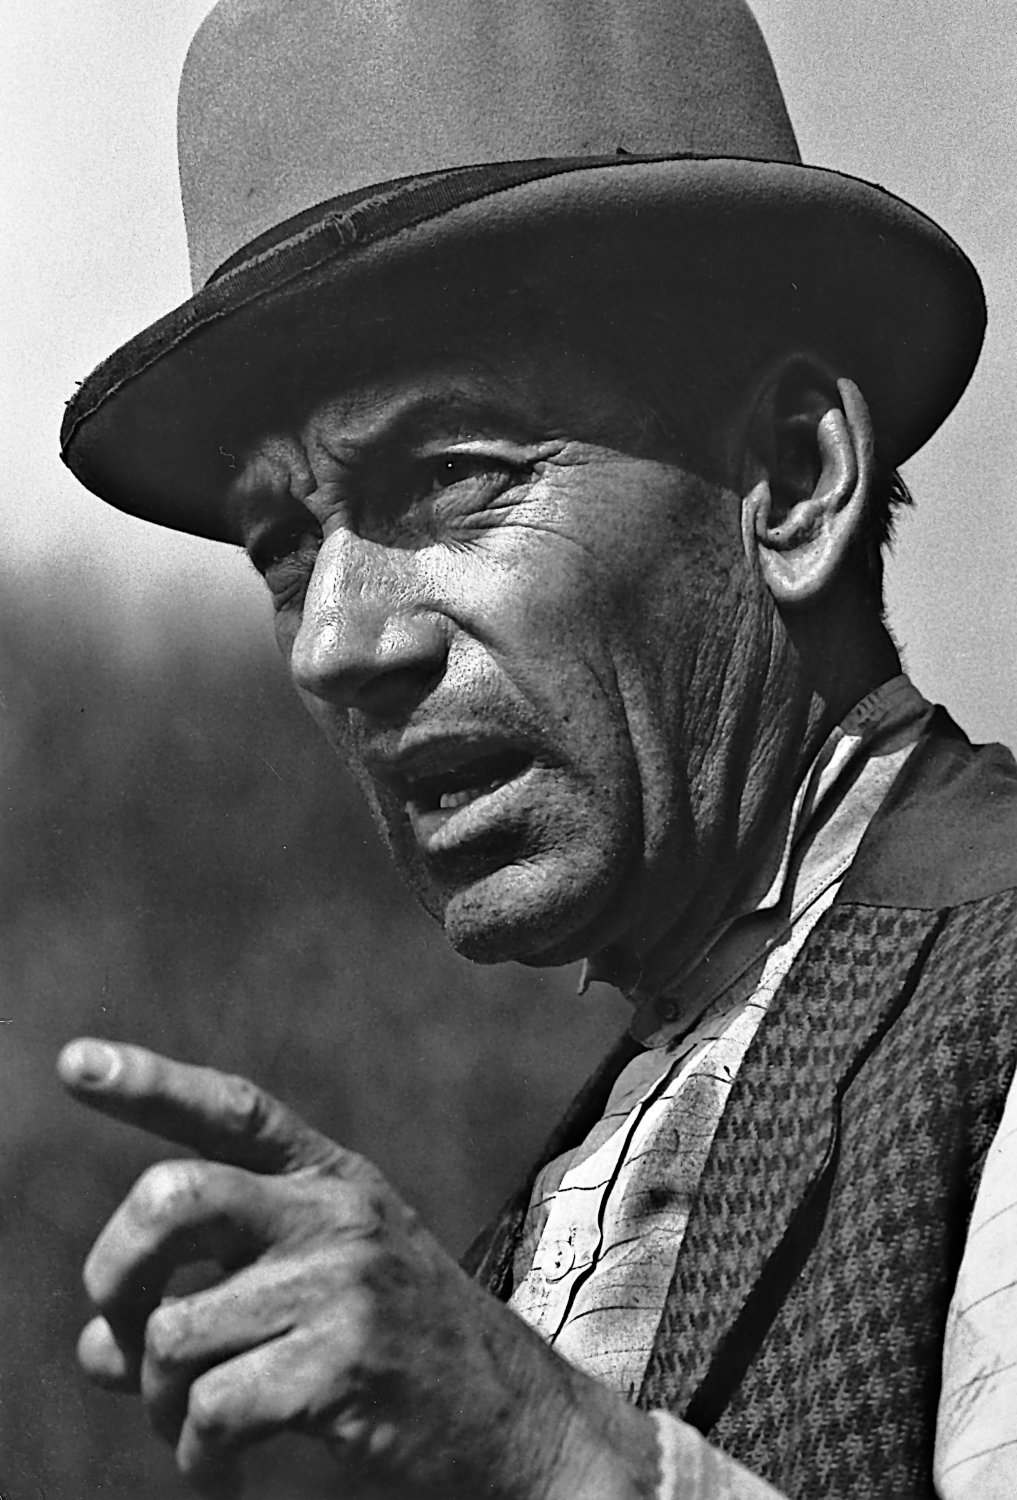 - Hoagy Carmichael in a character role on Laramie. - Photojournalism - Life Magazine - NBC TV - Tony Karp, design, art, photography, techno-impressionist, techno-impressionism, aerial photography , drone , drones , dji , mavic pro , video , 3D printing - Books -